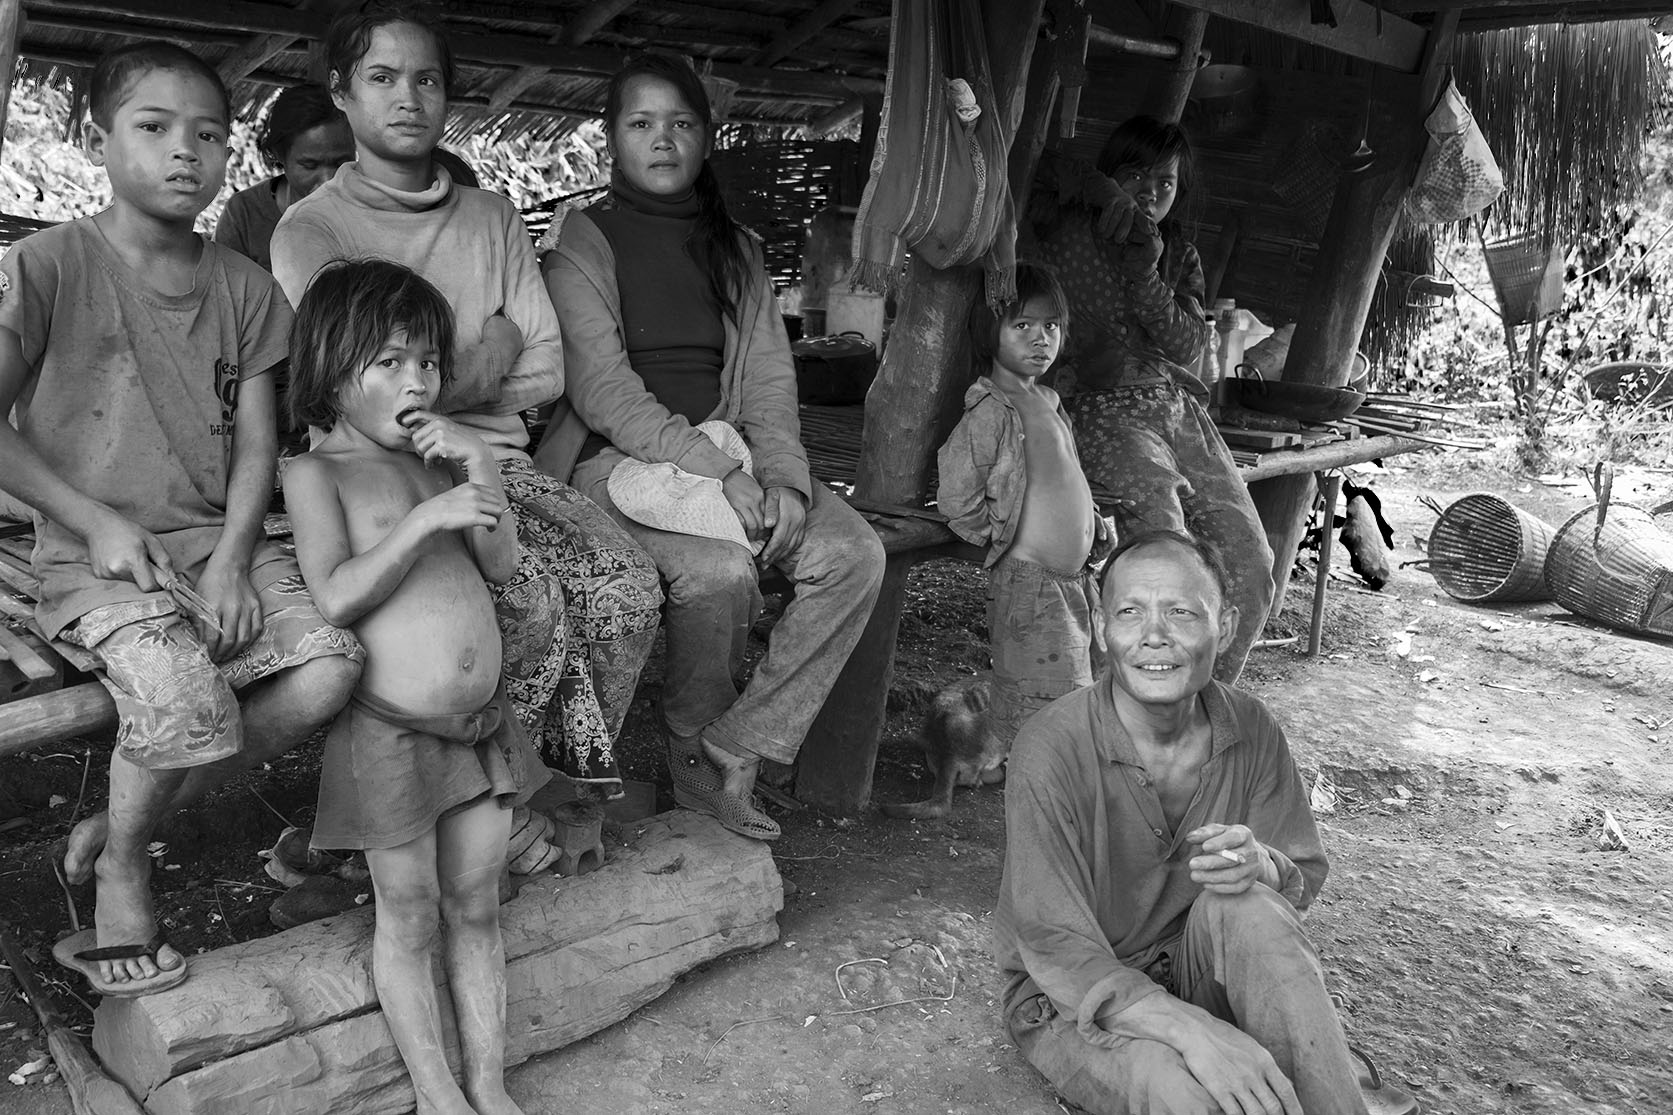 A minority family is relaxing in the shadow of their home in Ratanakiri, Cambodia